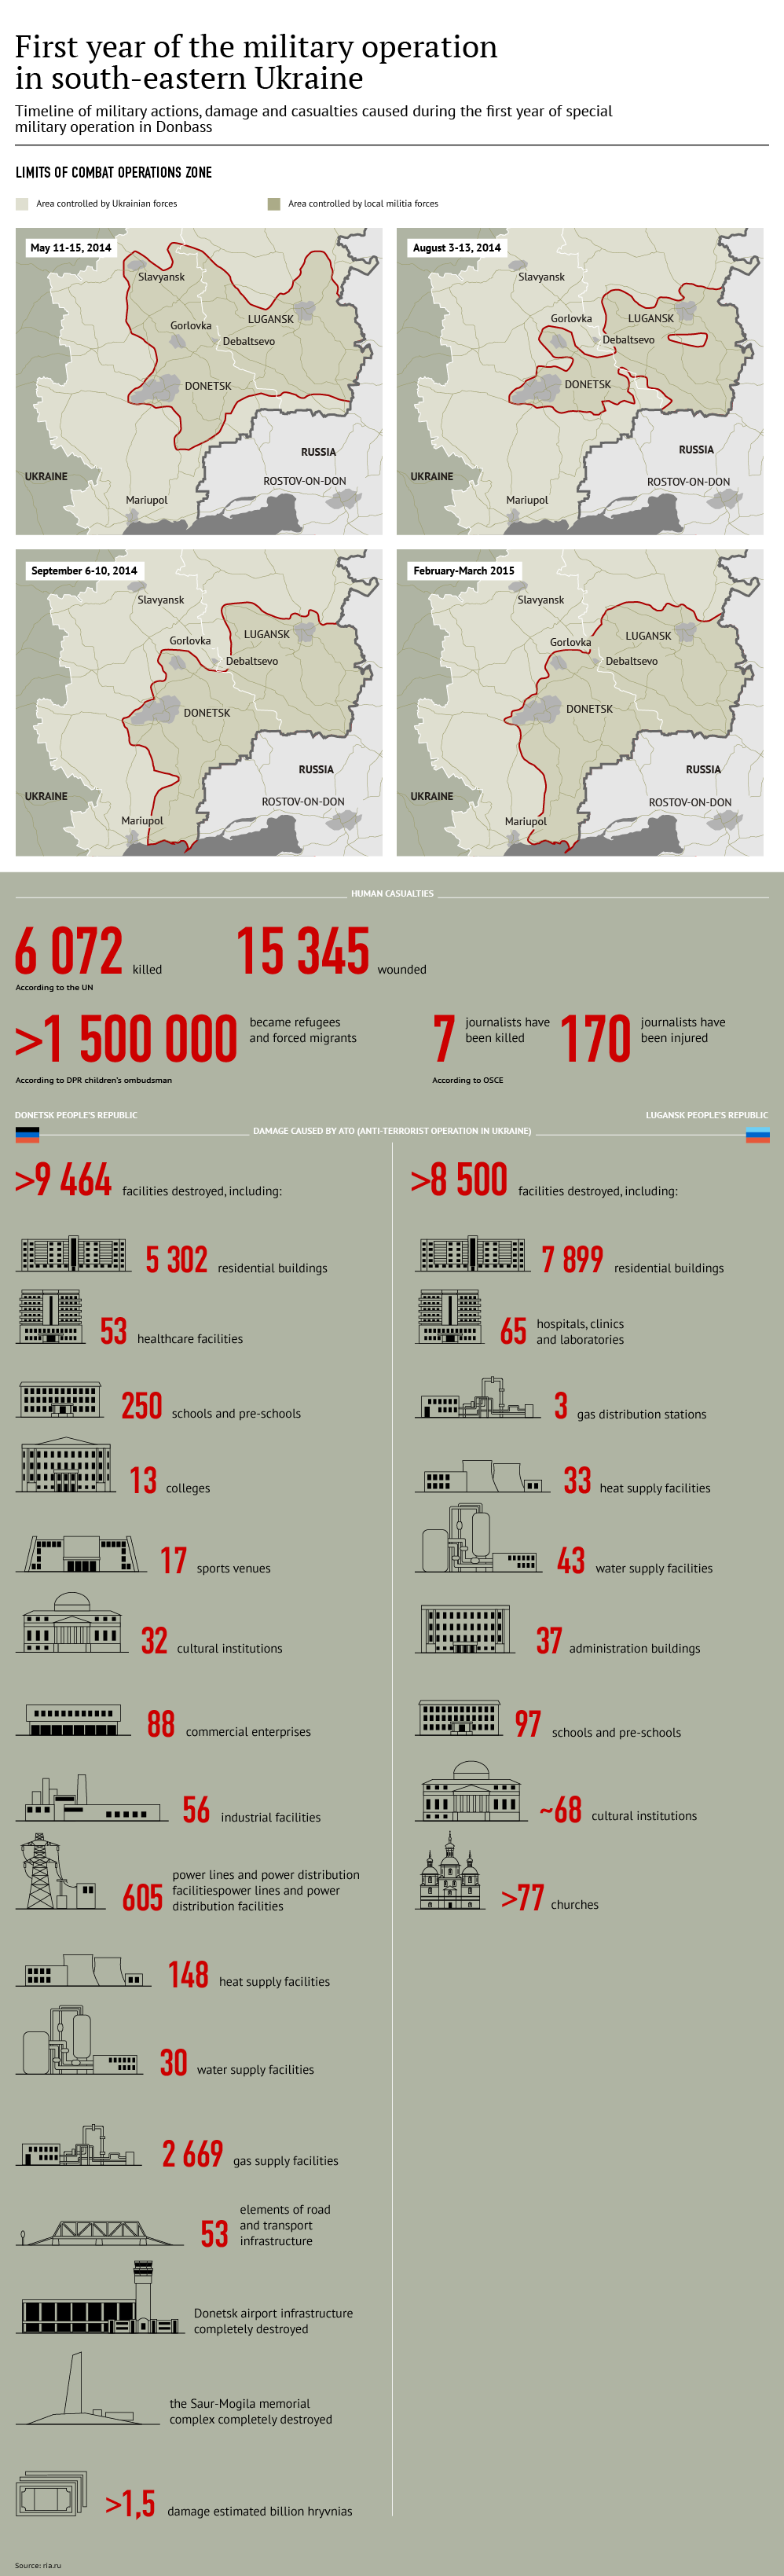 First year of the military operation in south-eastern Ukraine